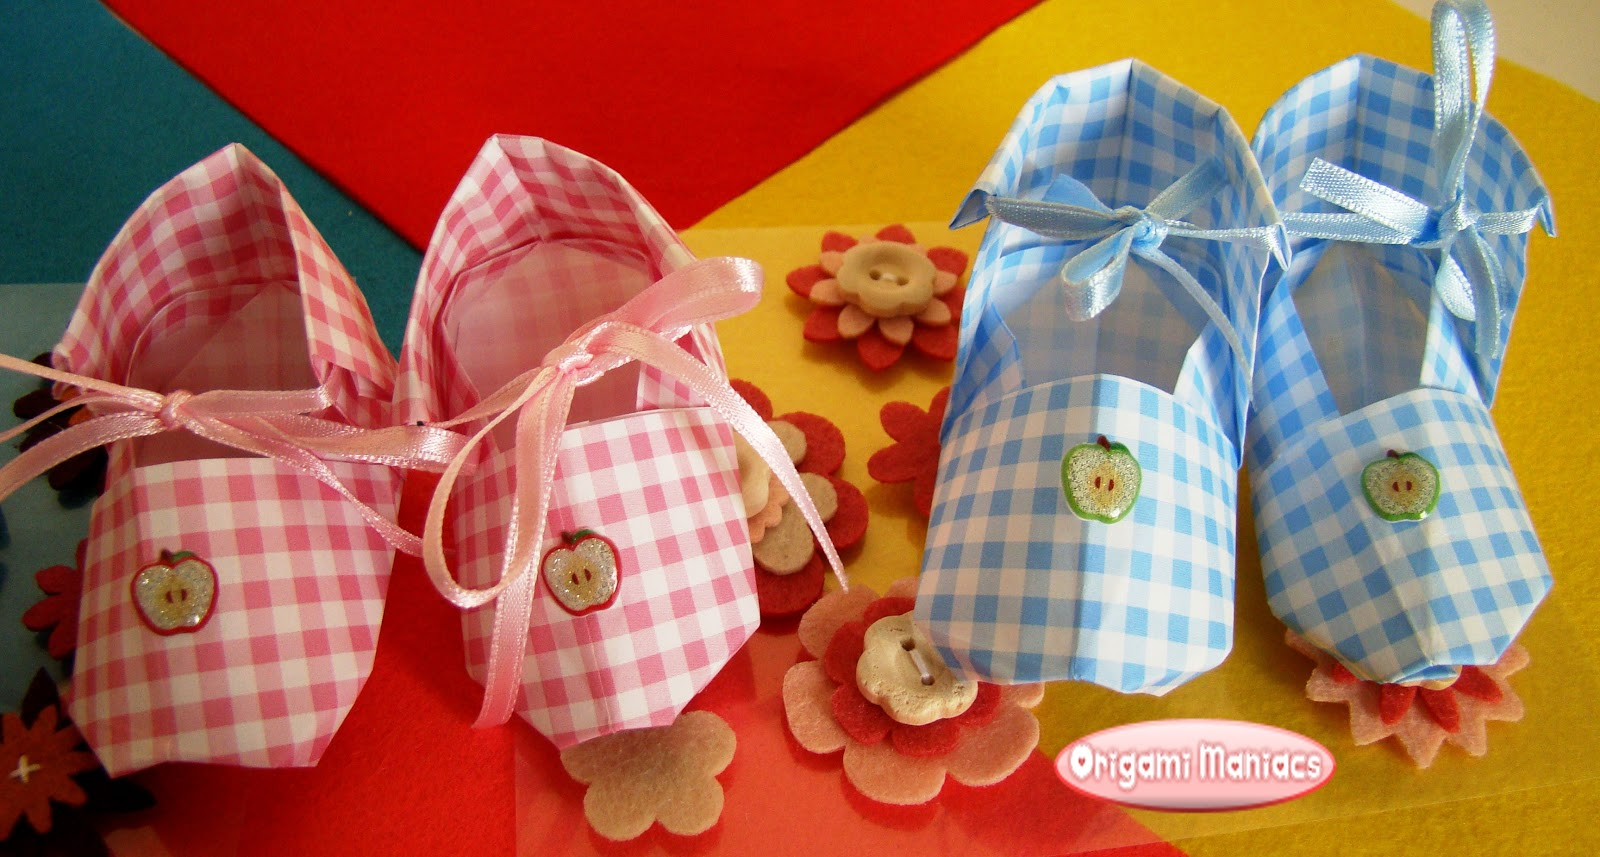 Origami Maniacs Baby Shoes